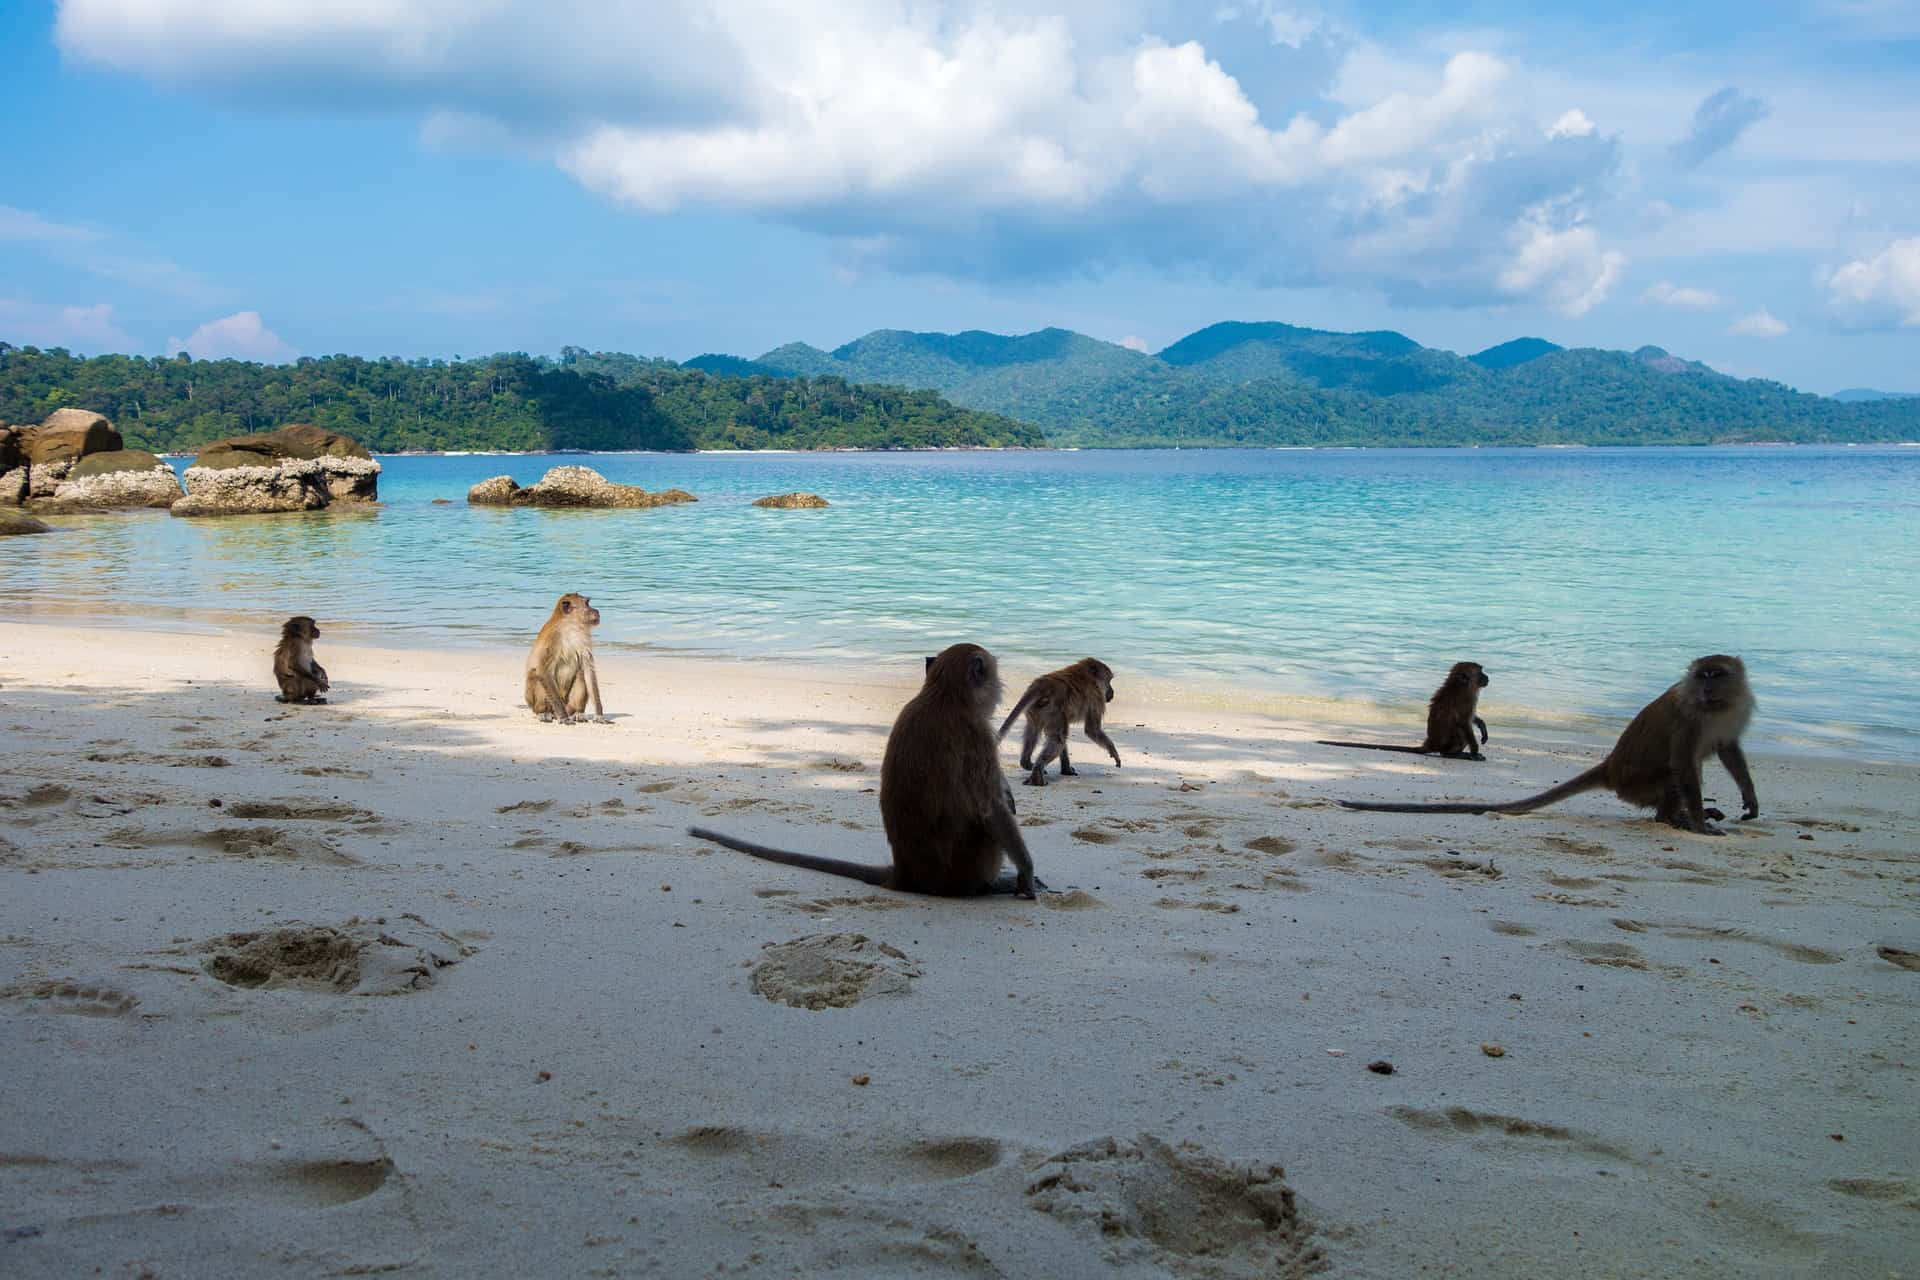 Monkey Island in Thailand